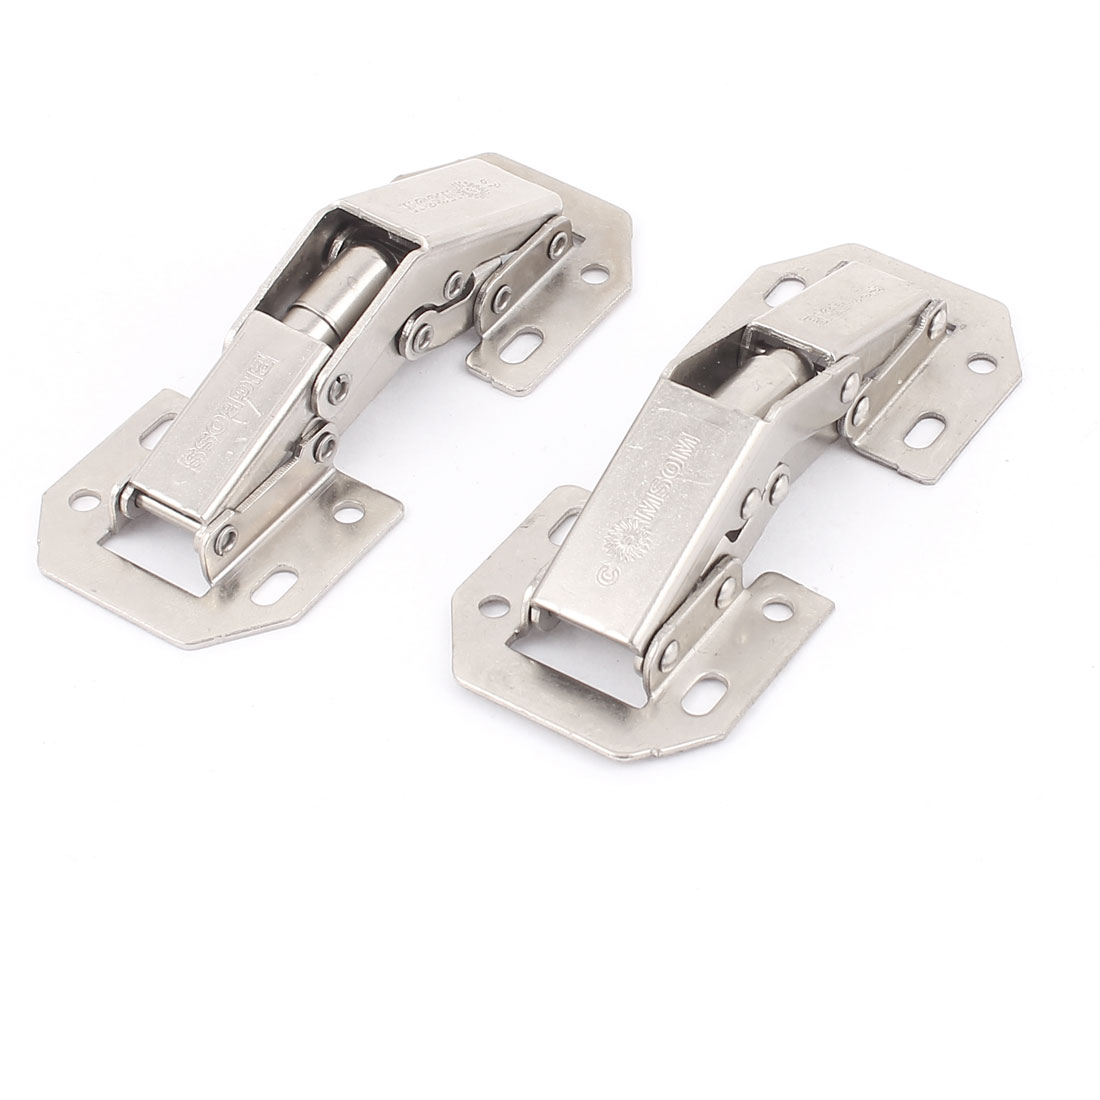 Cabinet Hydraulic Self Close Half Overlay Clip On Concealed Inset Hinge 2Pcs(China (Mainland))